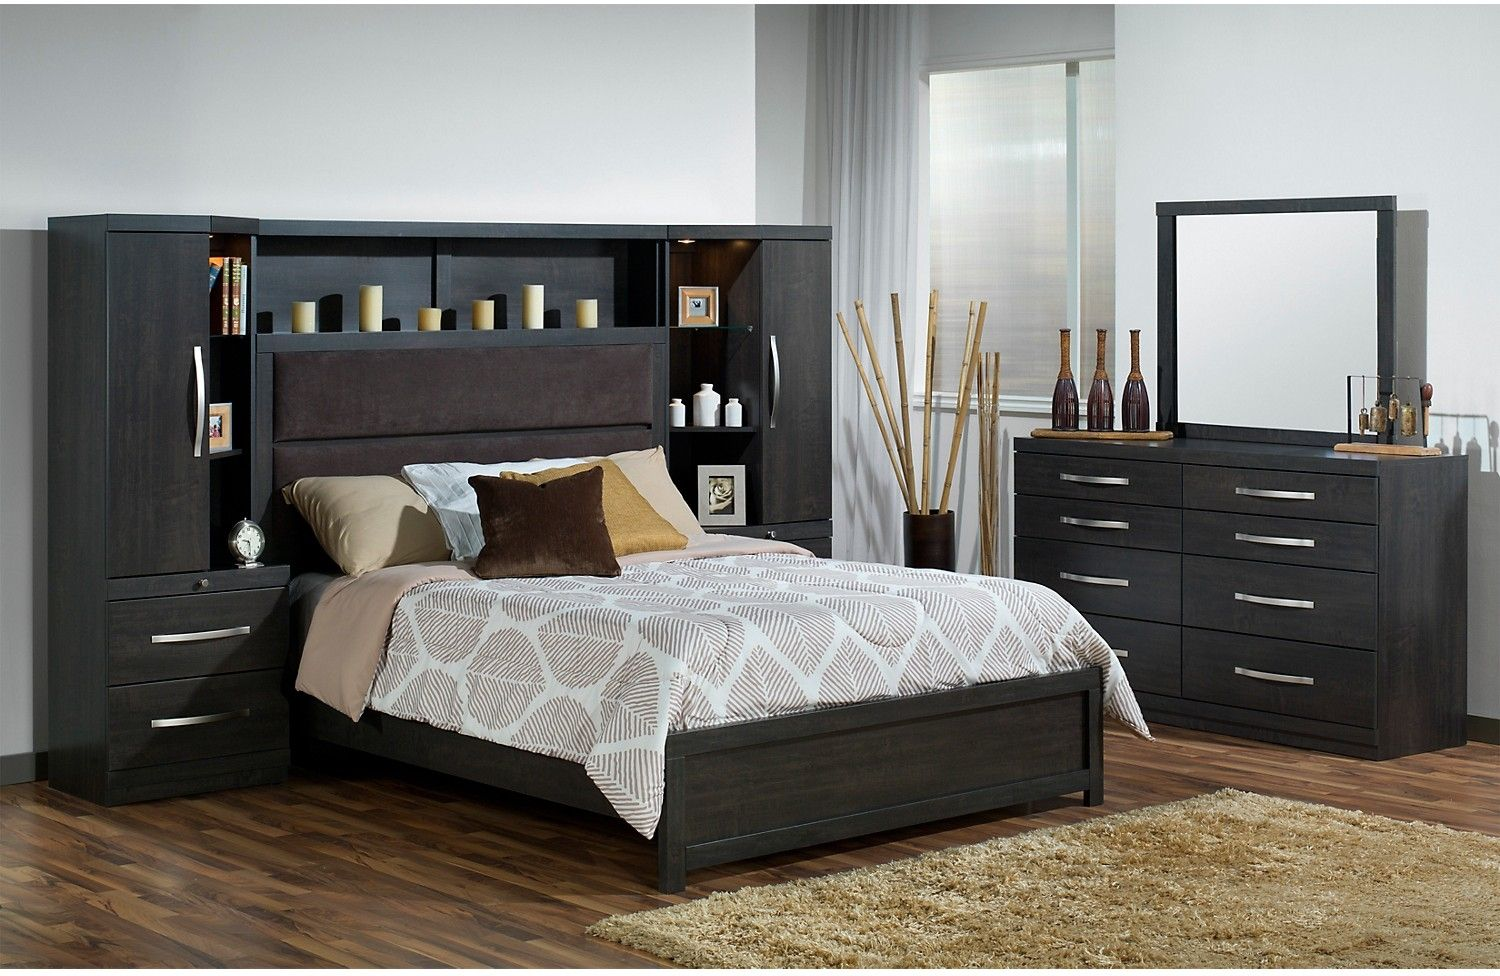 Willowdale King 5 Piece Pier Bedroom Package The Brick Bedroom Sets Furniture Bedroom Interior